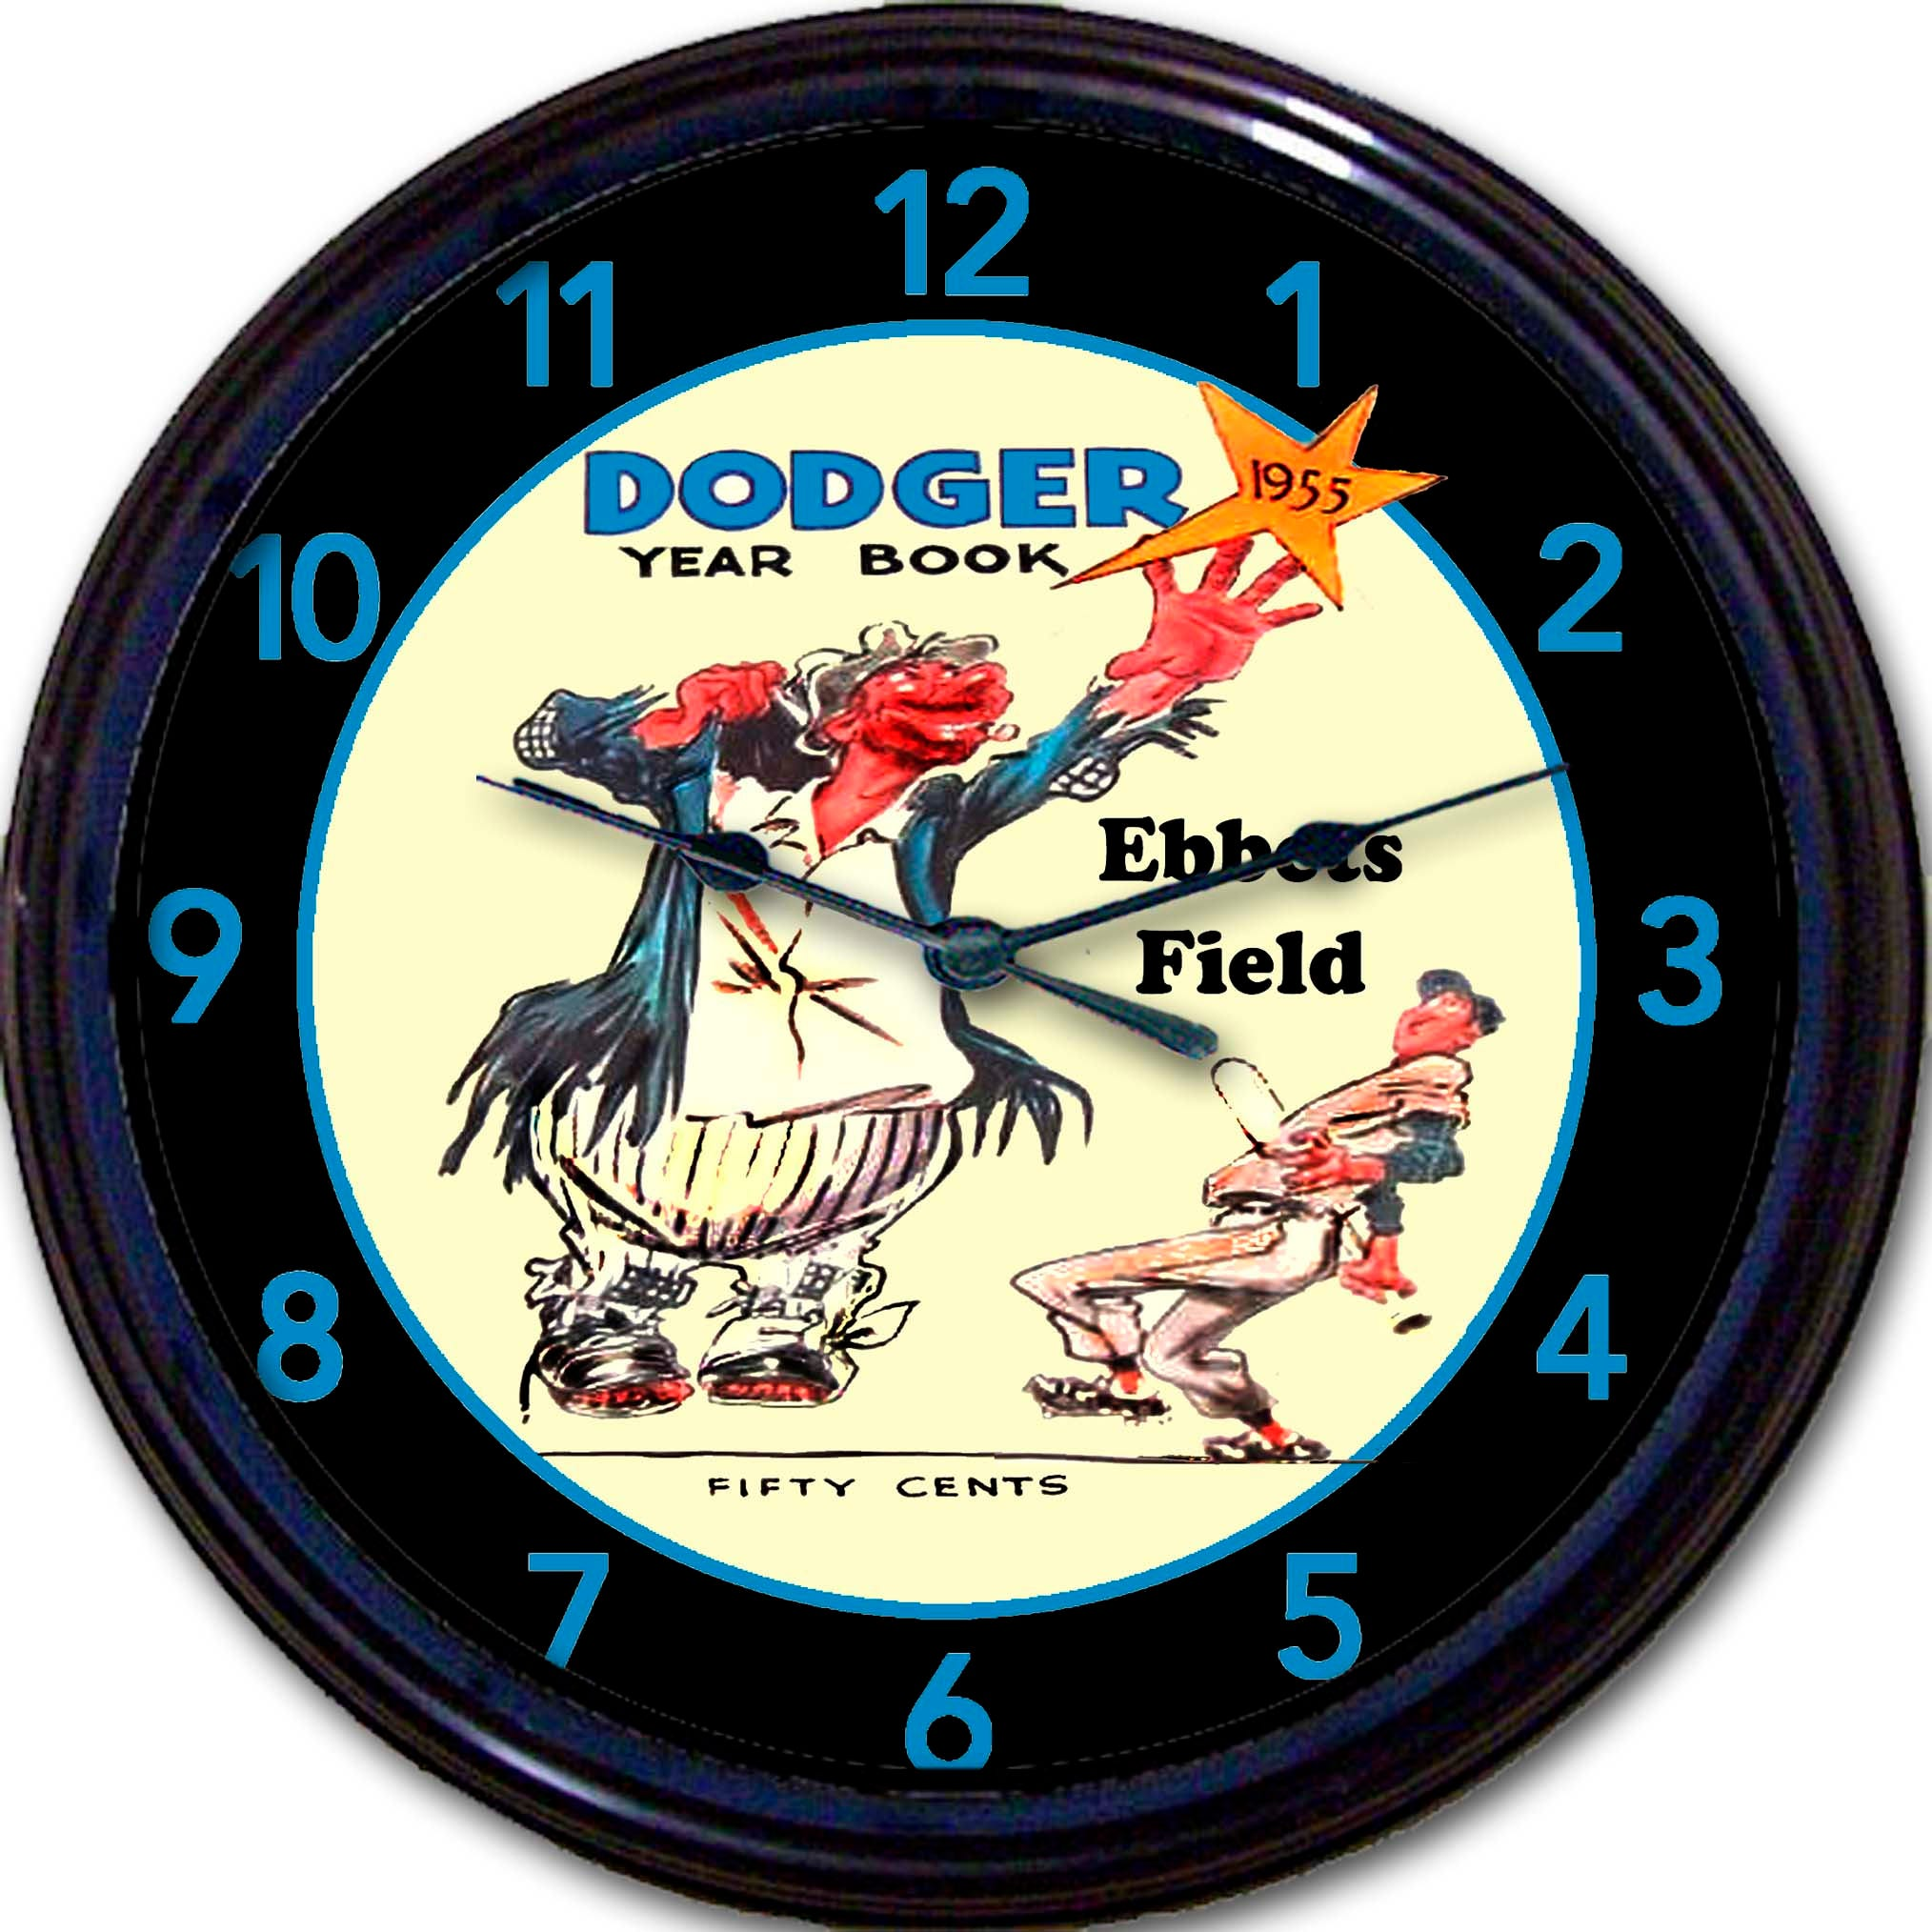 Brooklyn Dodgers Ebbets Field 1955 World Series Wall Clock